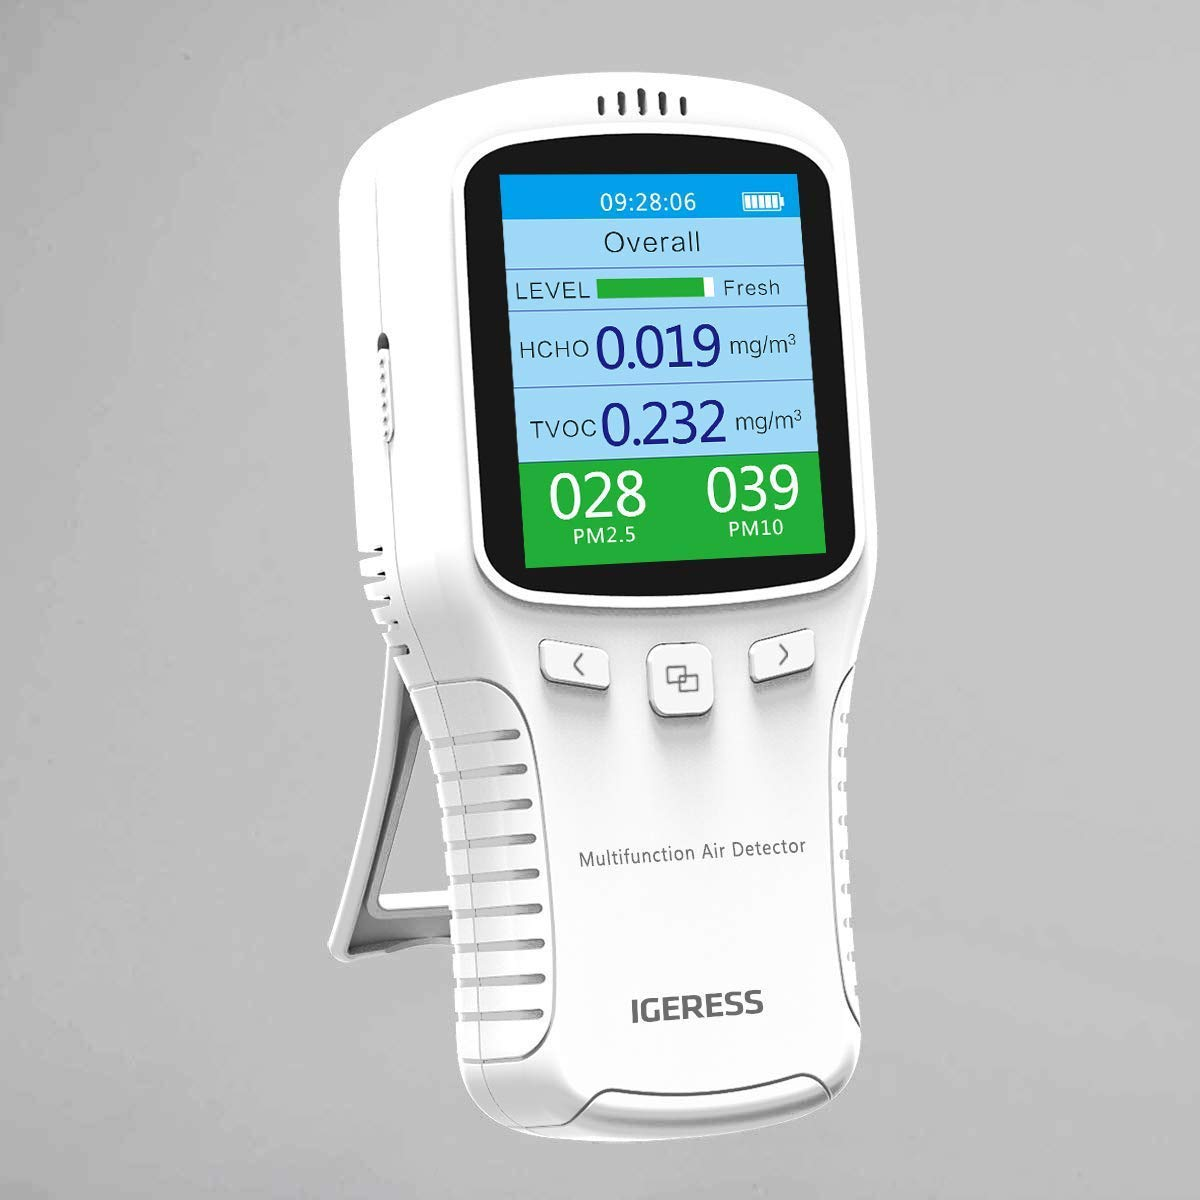 Air Quality Detector IGERESS Multifunctional Indoor Air Quality Meter Monitor with Colorful LCD Screen and Holder for Formaldehyde (HCHO) VOC PM2.5 PM10 Accuracy Tester (White)